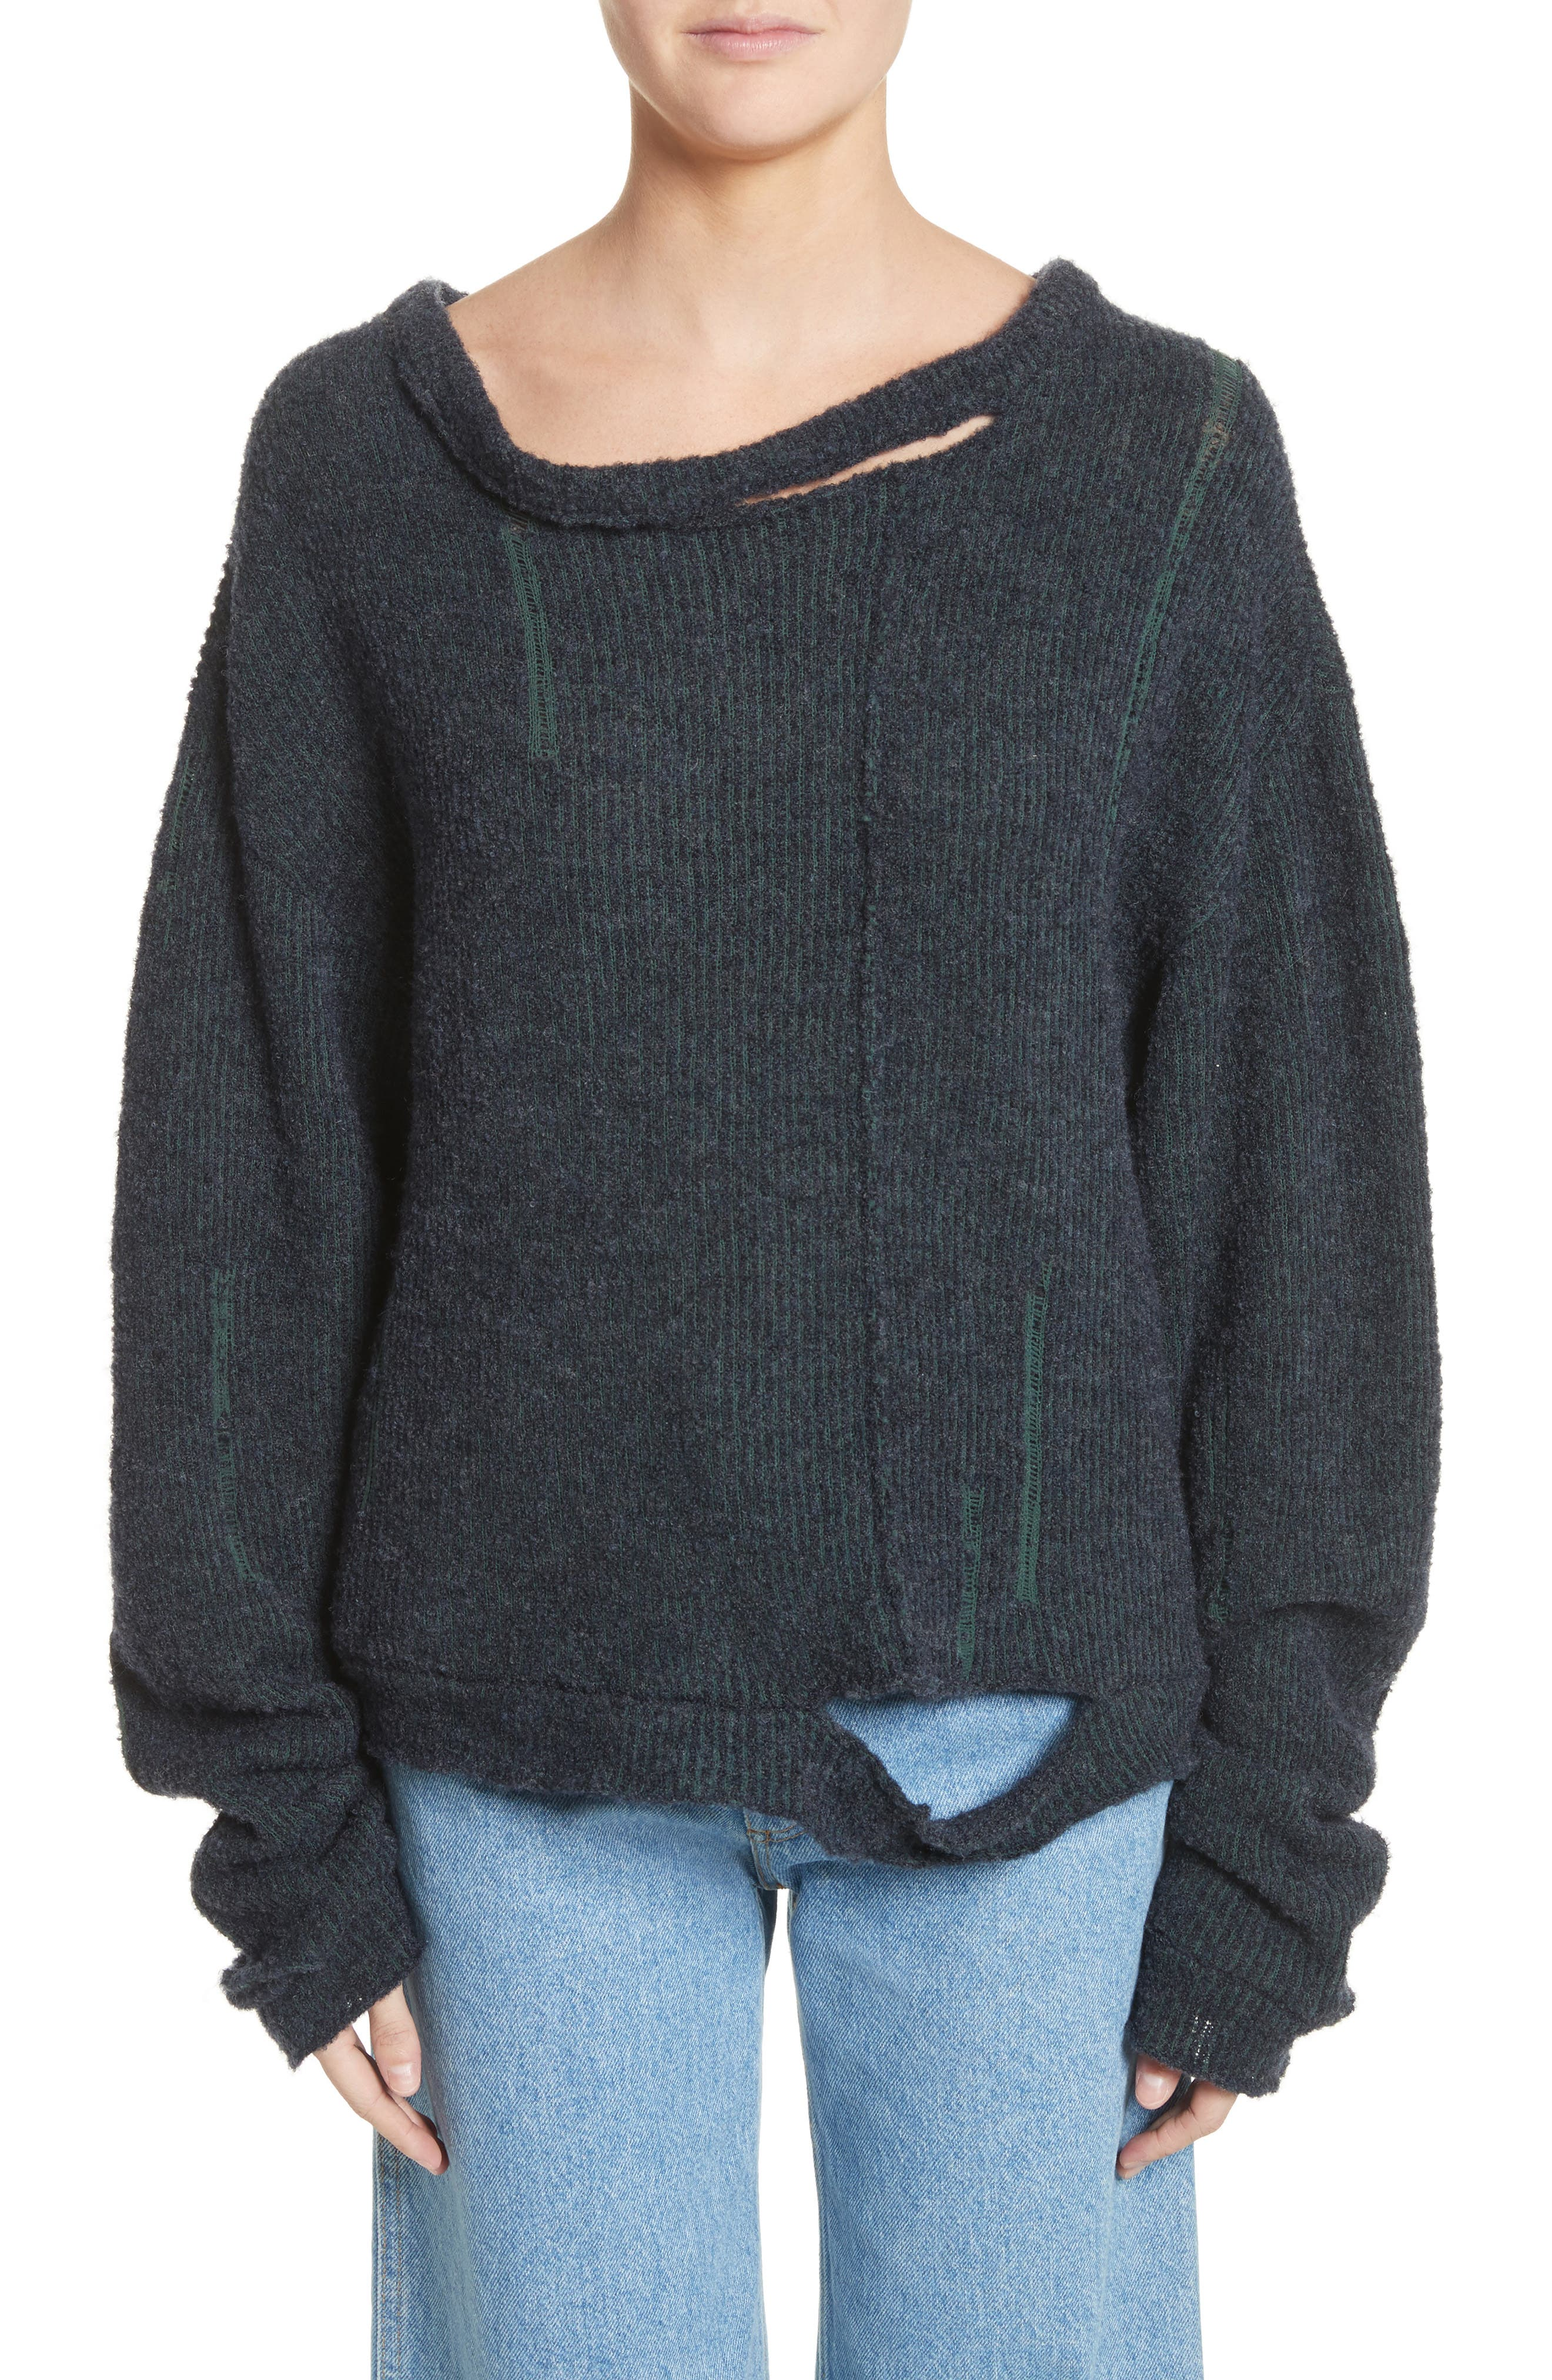 Wiggly Road Sweater,                         Main,                         color, Navy